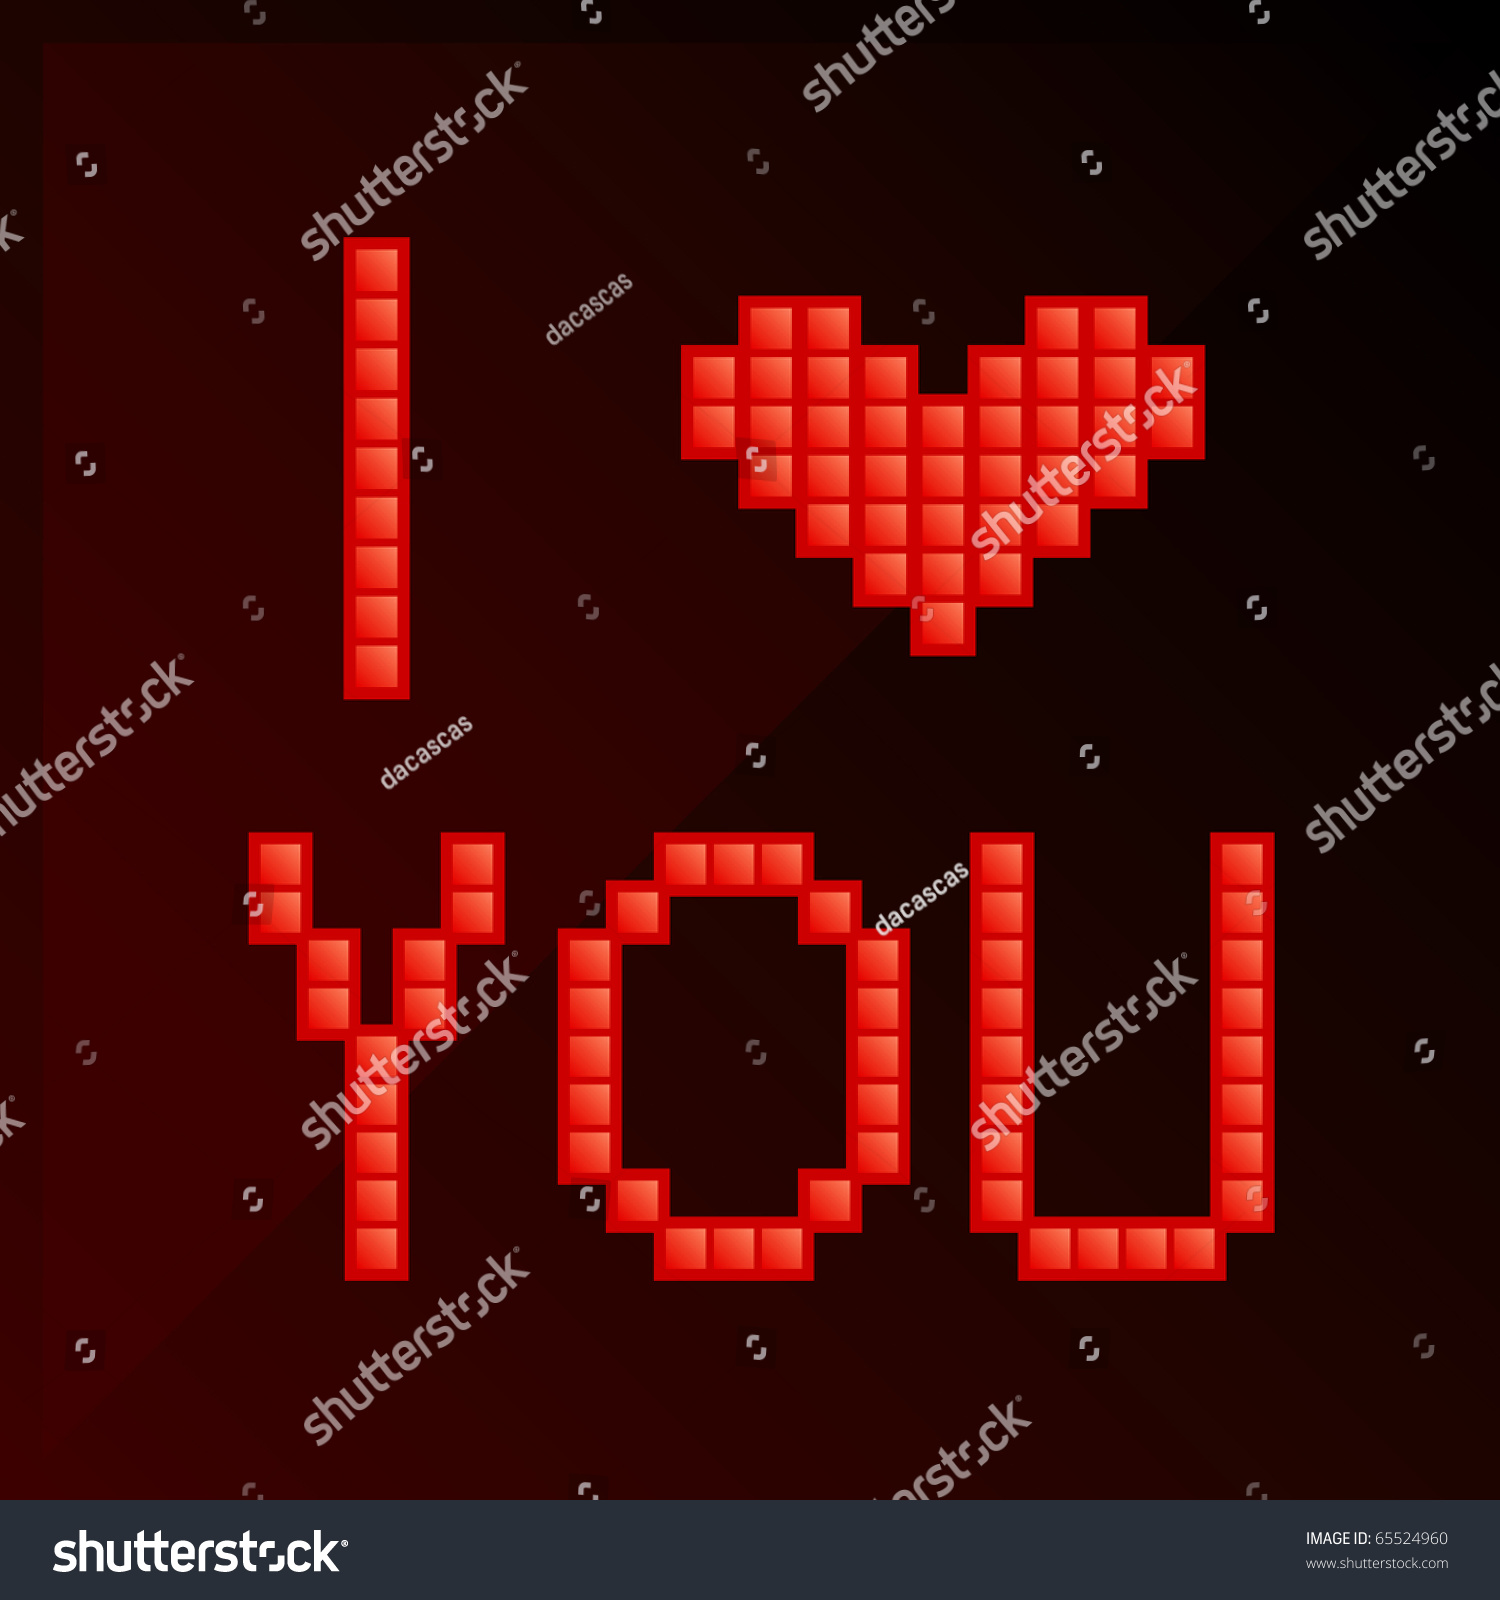 vector illustration of title i love you in pixel art style 65524960 shutterstock. Black Bedroom Furniture Sets. Home Design Ideas